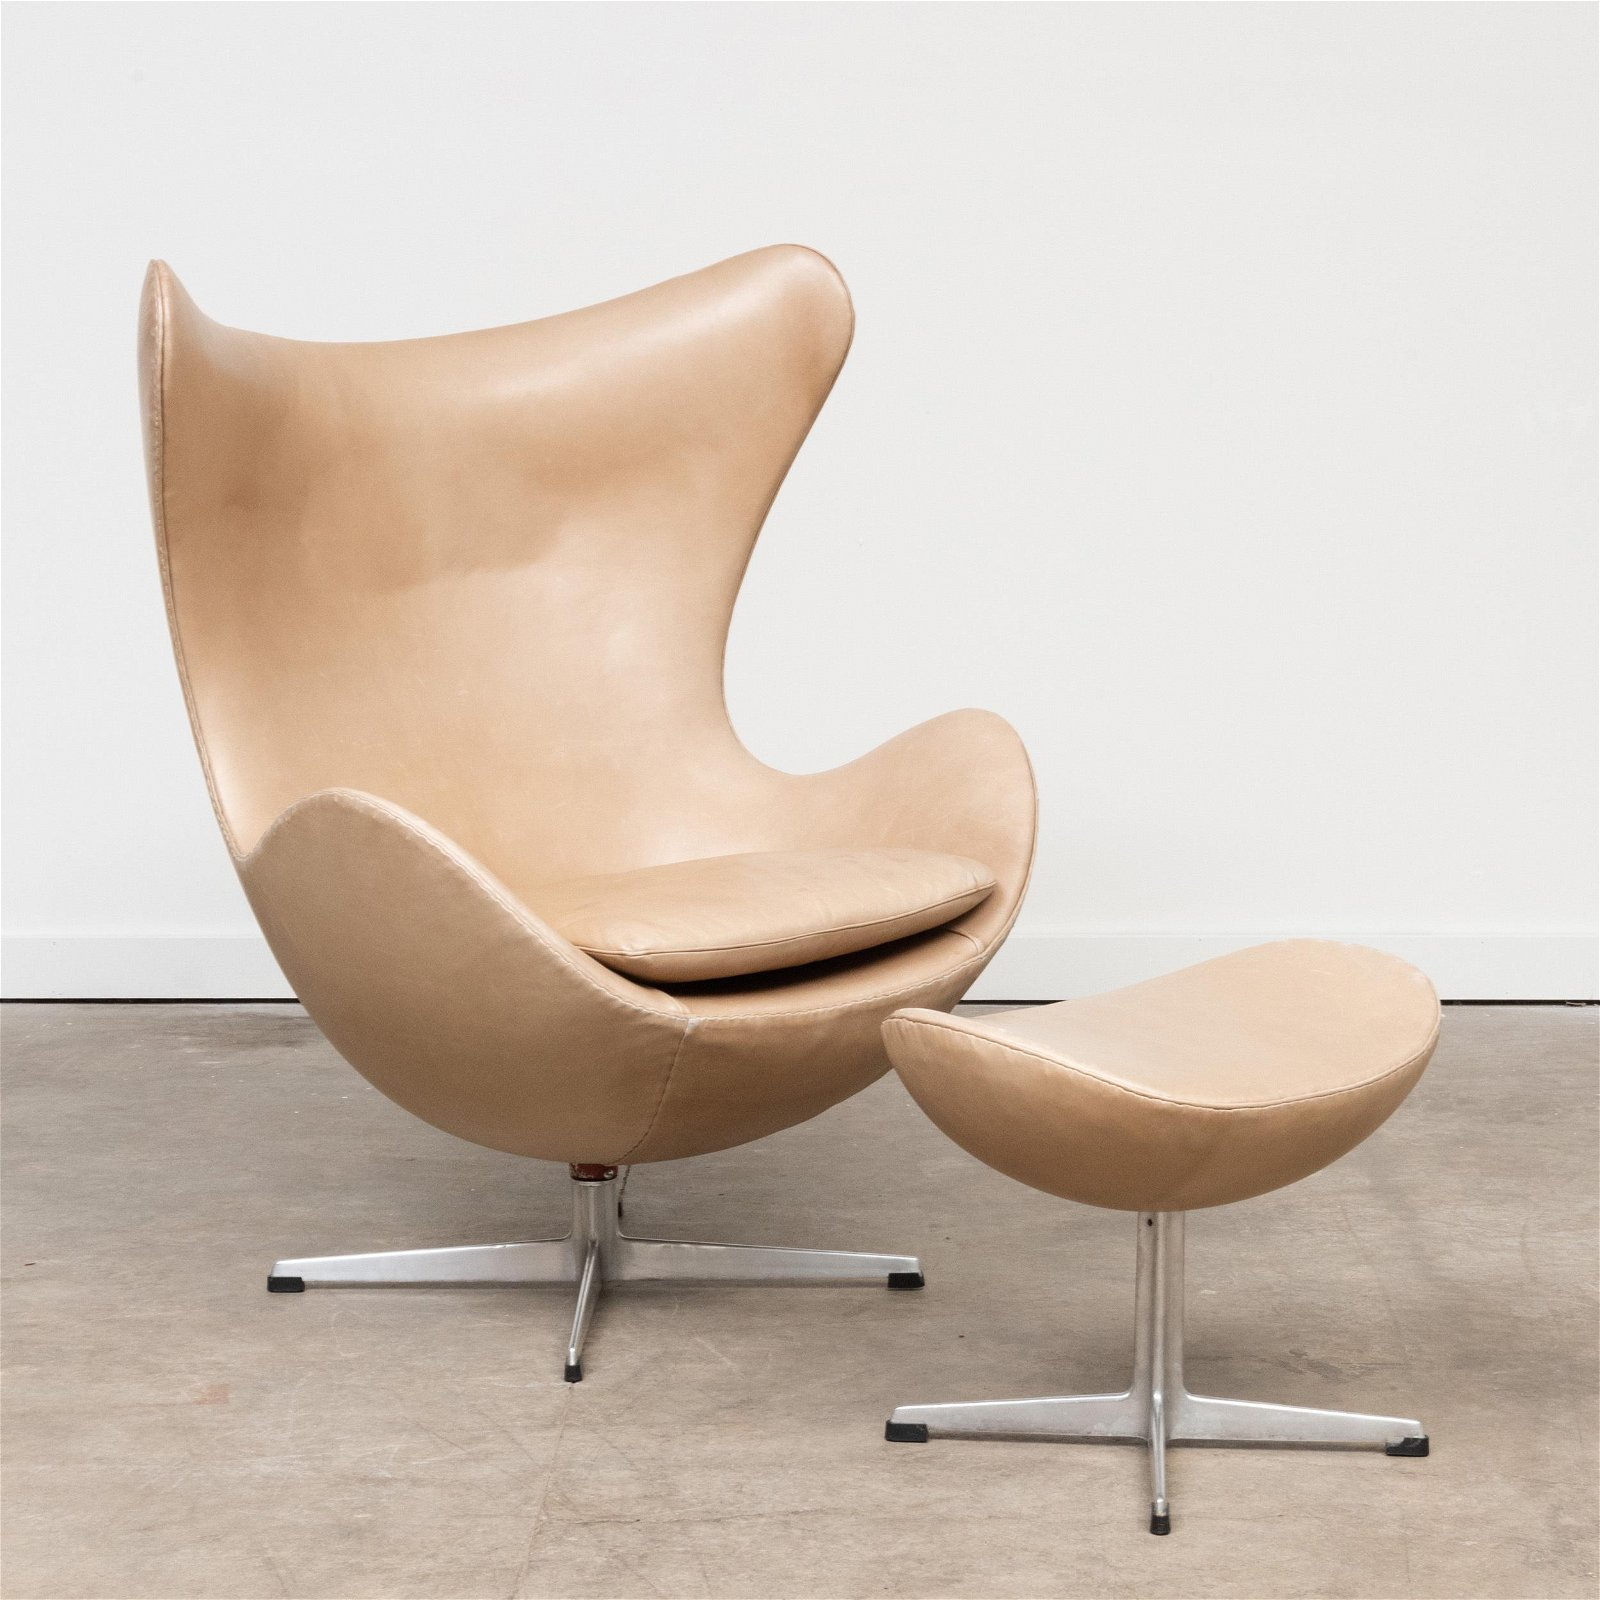 Arne Jacobsen Aluminum and Leather 'Egg' Chair with